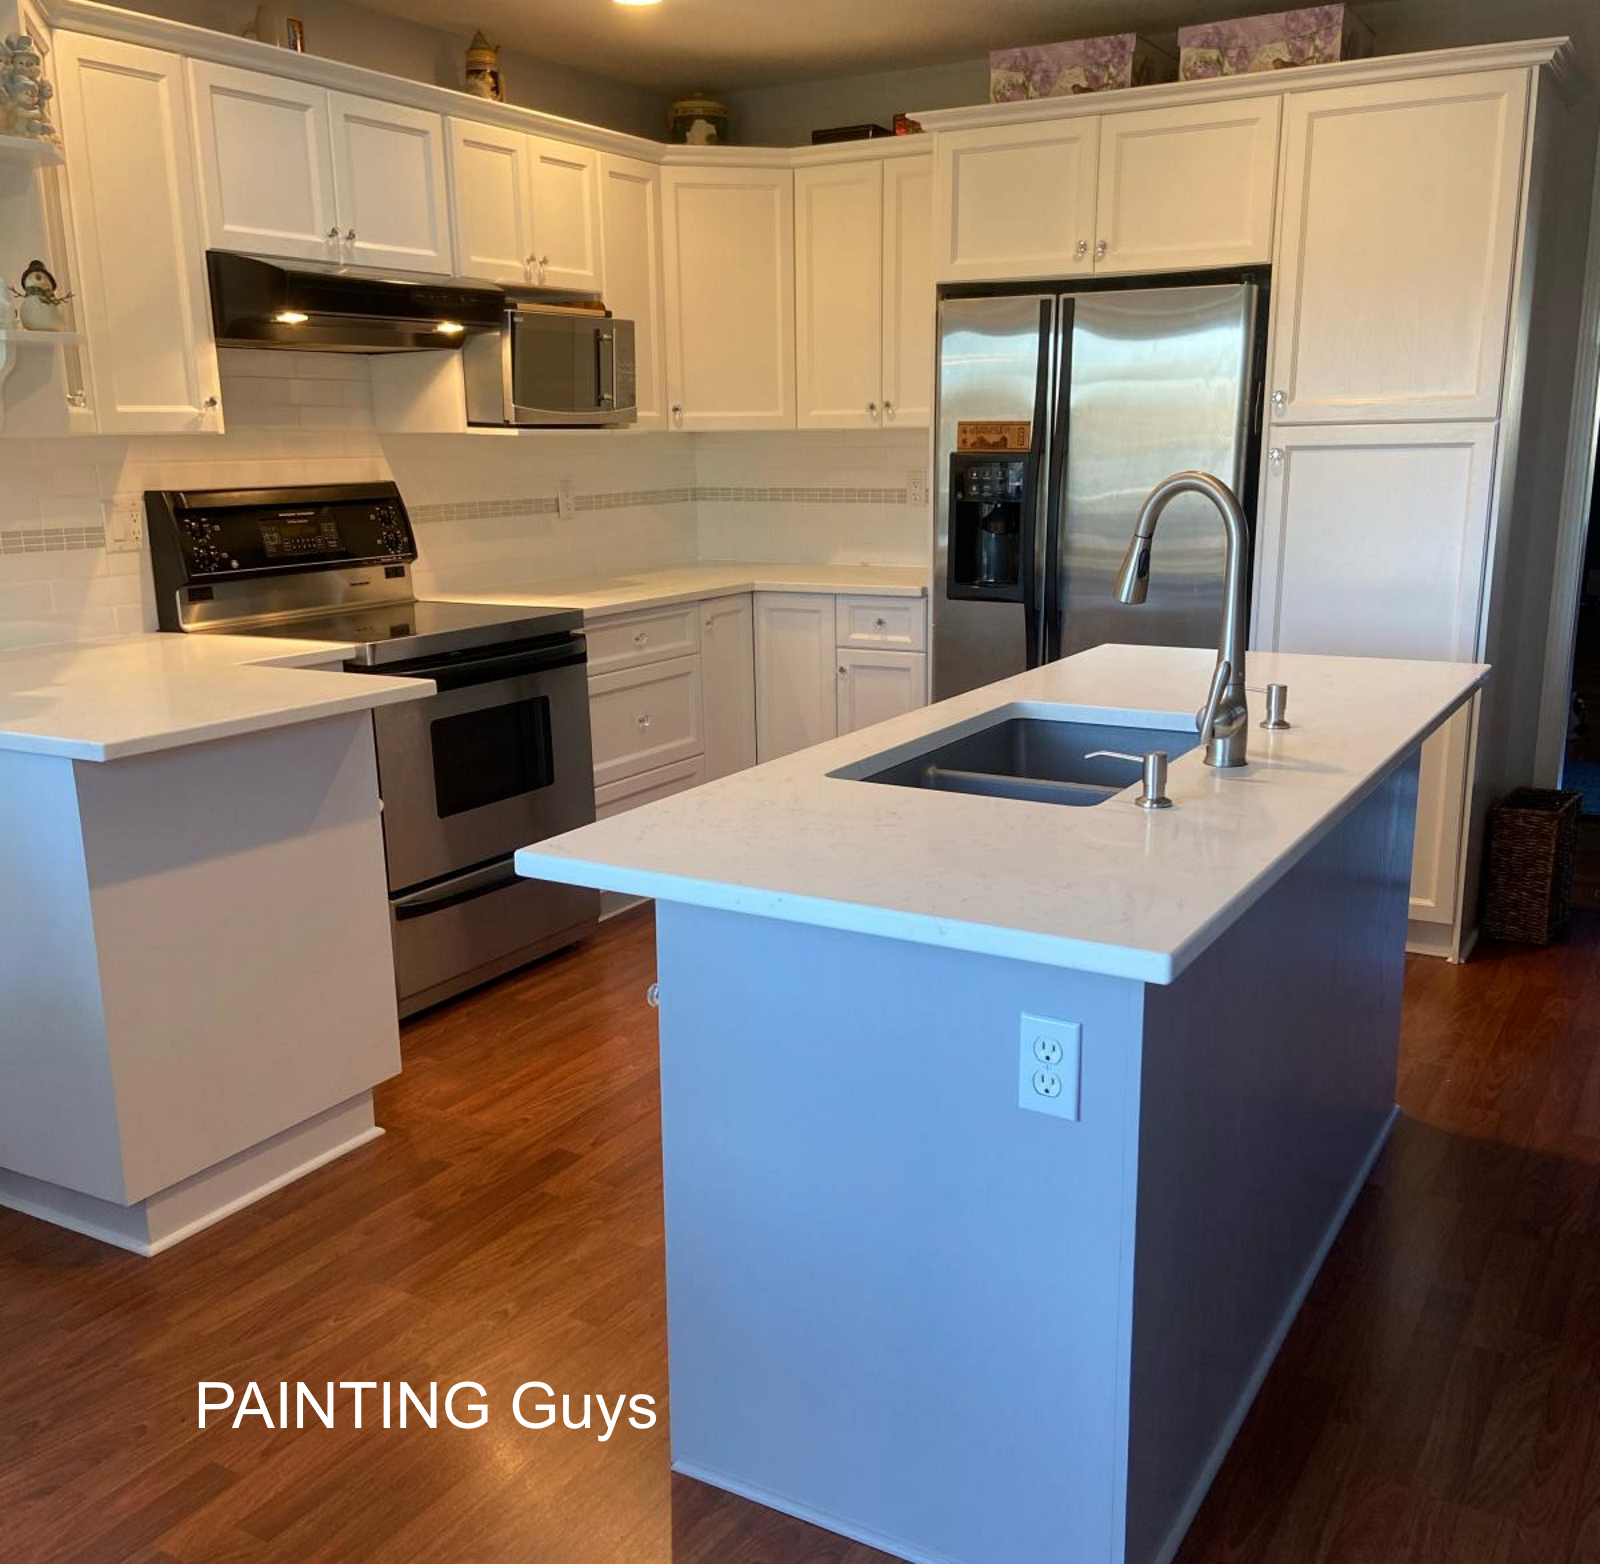 Nanaimo Kitchen cabinet painting. PAINTING Guys